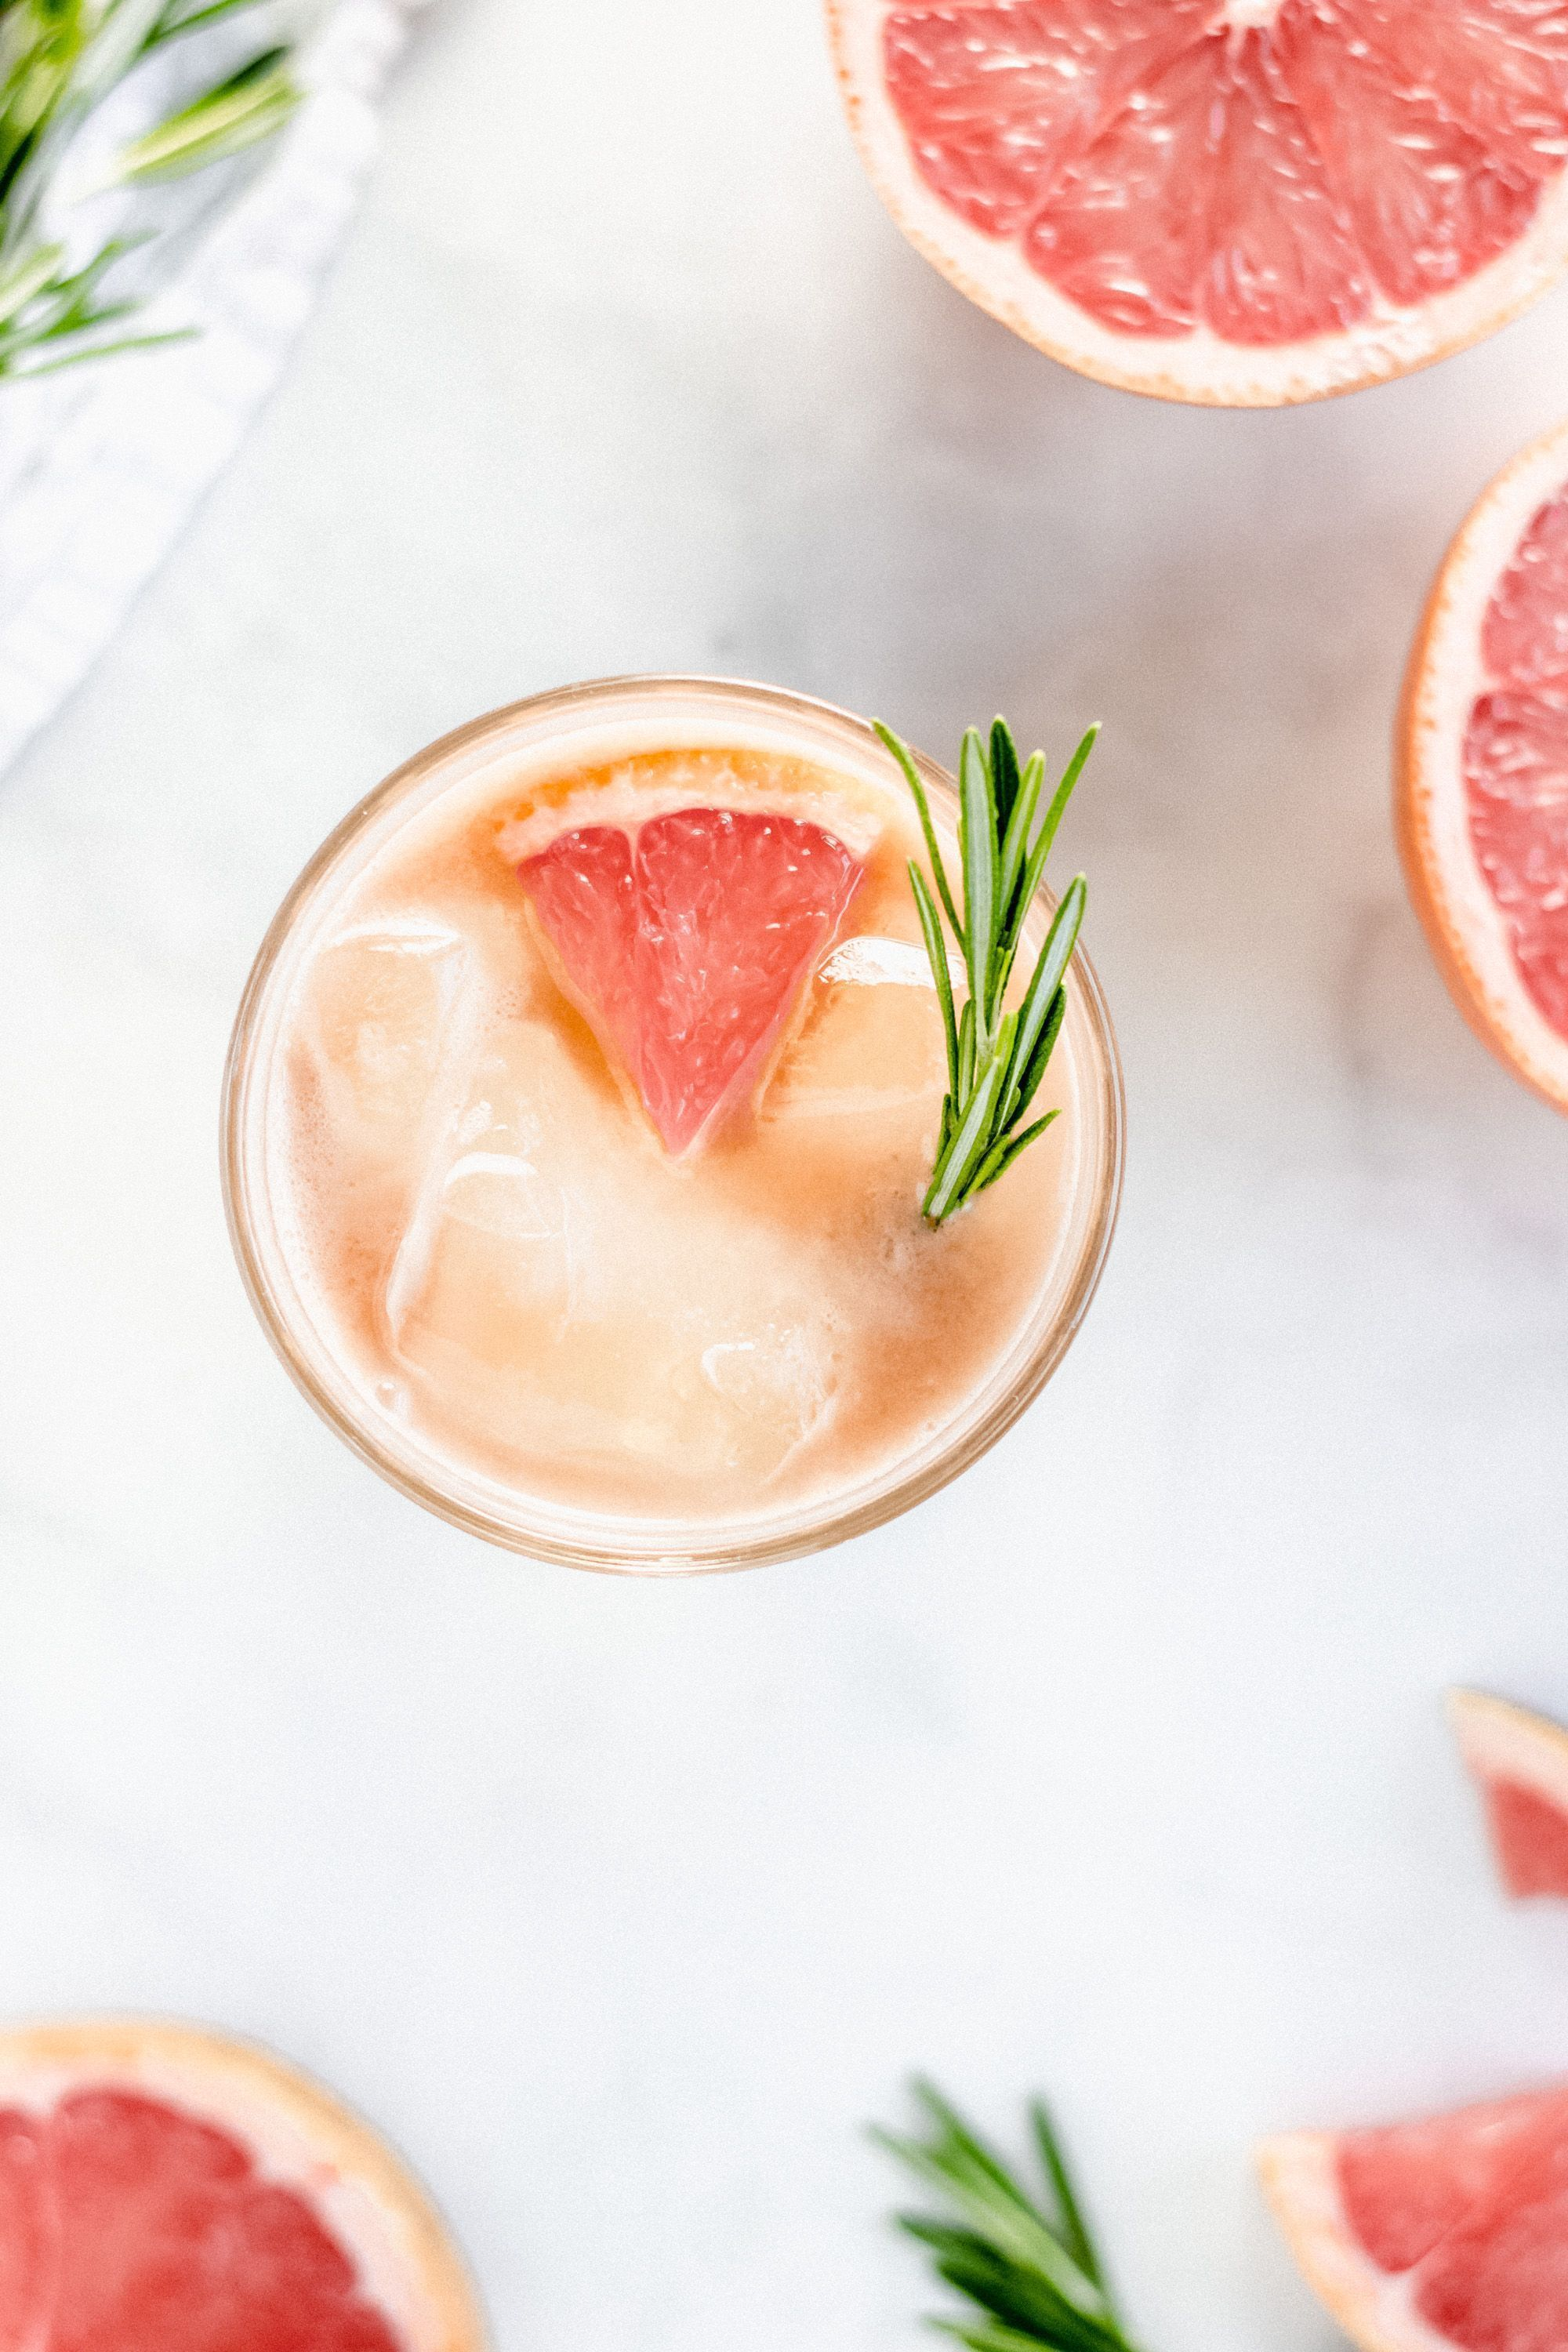 Rosemary Infused Grapefruit Cocktails #grapefruitcocktail Ruby Boulevard - A refreshing whiskey based cocktail enhanced with fresh grapefruit and rosemary  honey simple syrup #grapefruitcocktail Rosemary Infused Grapefruit Cocktails #grapefruitcocktail Ruby Boulevard - A refreshing whiskey based cocktail enhanced with fresh grapefruit and rosemary  honey simple syrup #grapefruitcocktail Rosemary Infused Grapefruit Cocktails #grapefruitcocktail Ruby Boulevard - A refreshing whiskey based cocktail #grapefruitcocktail